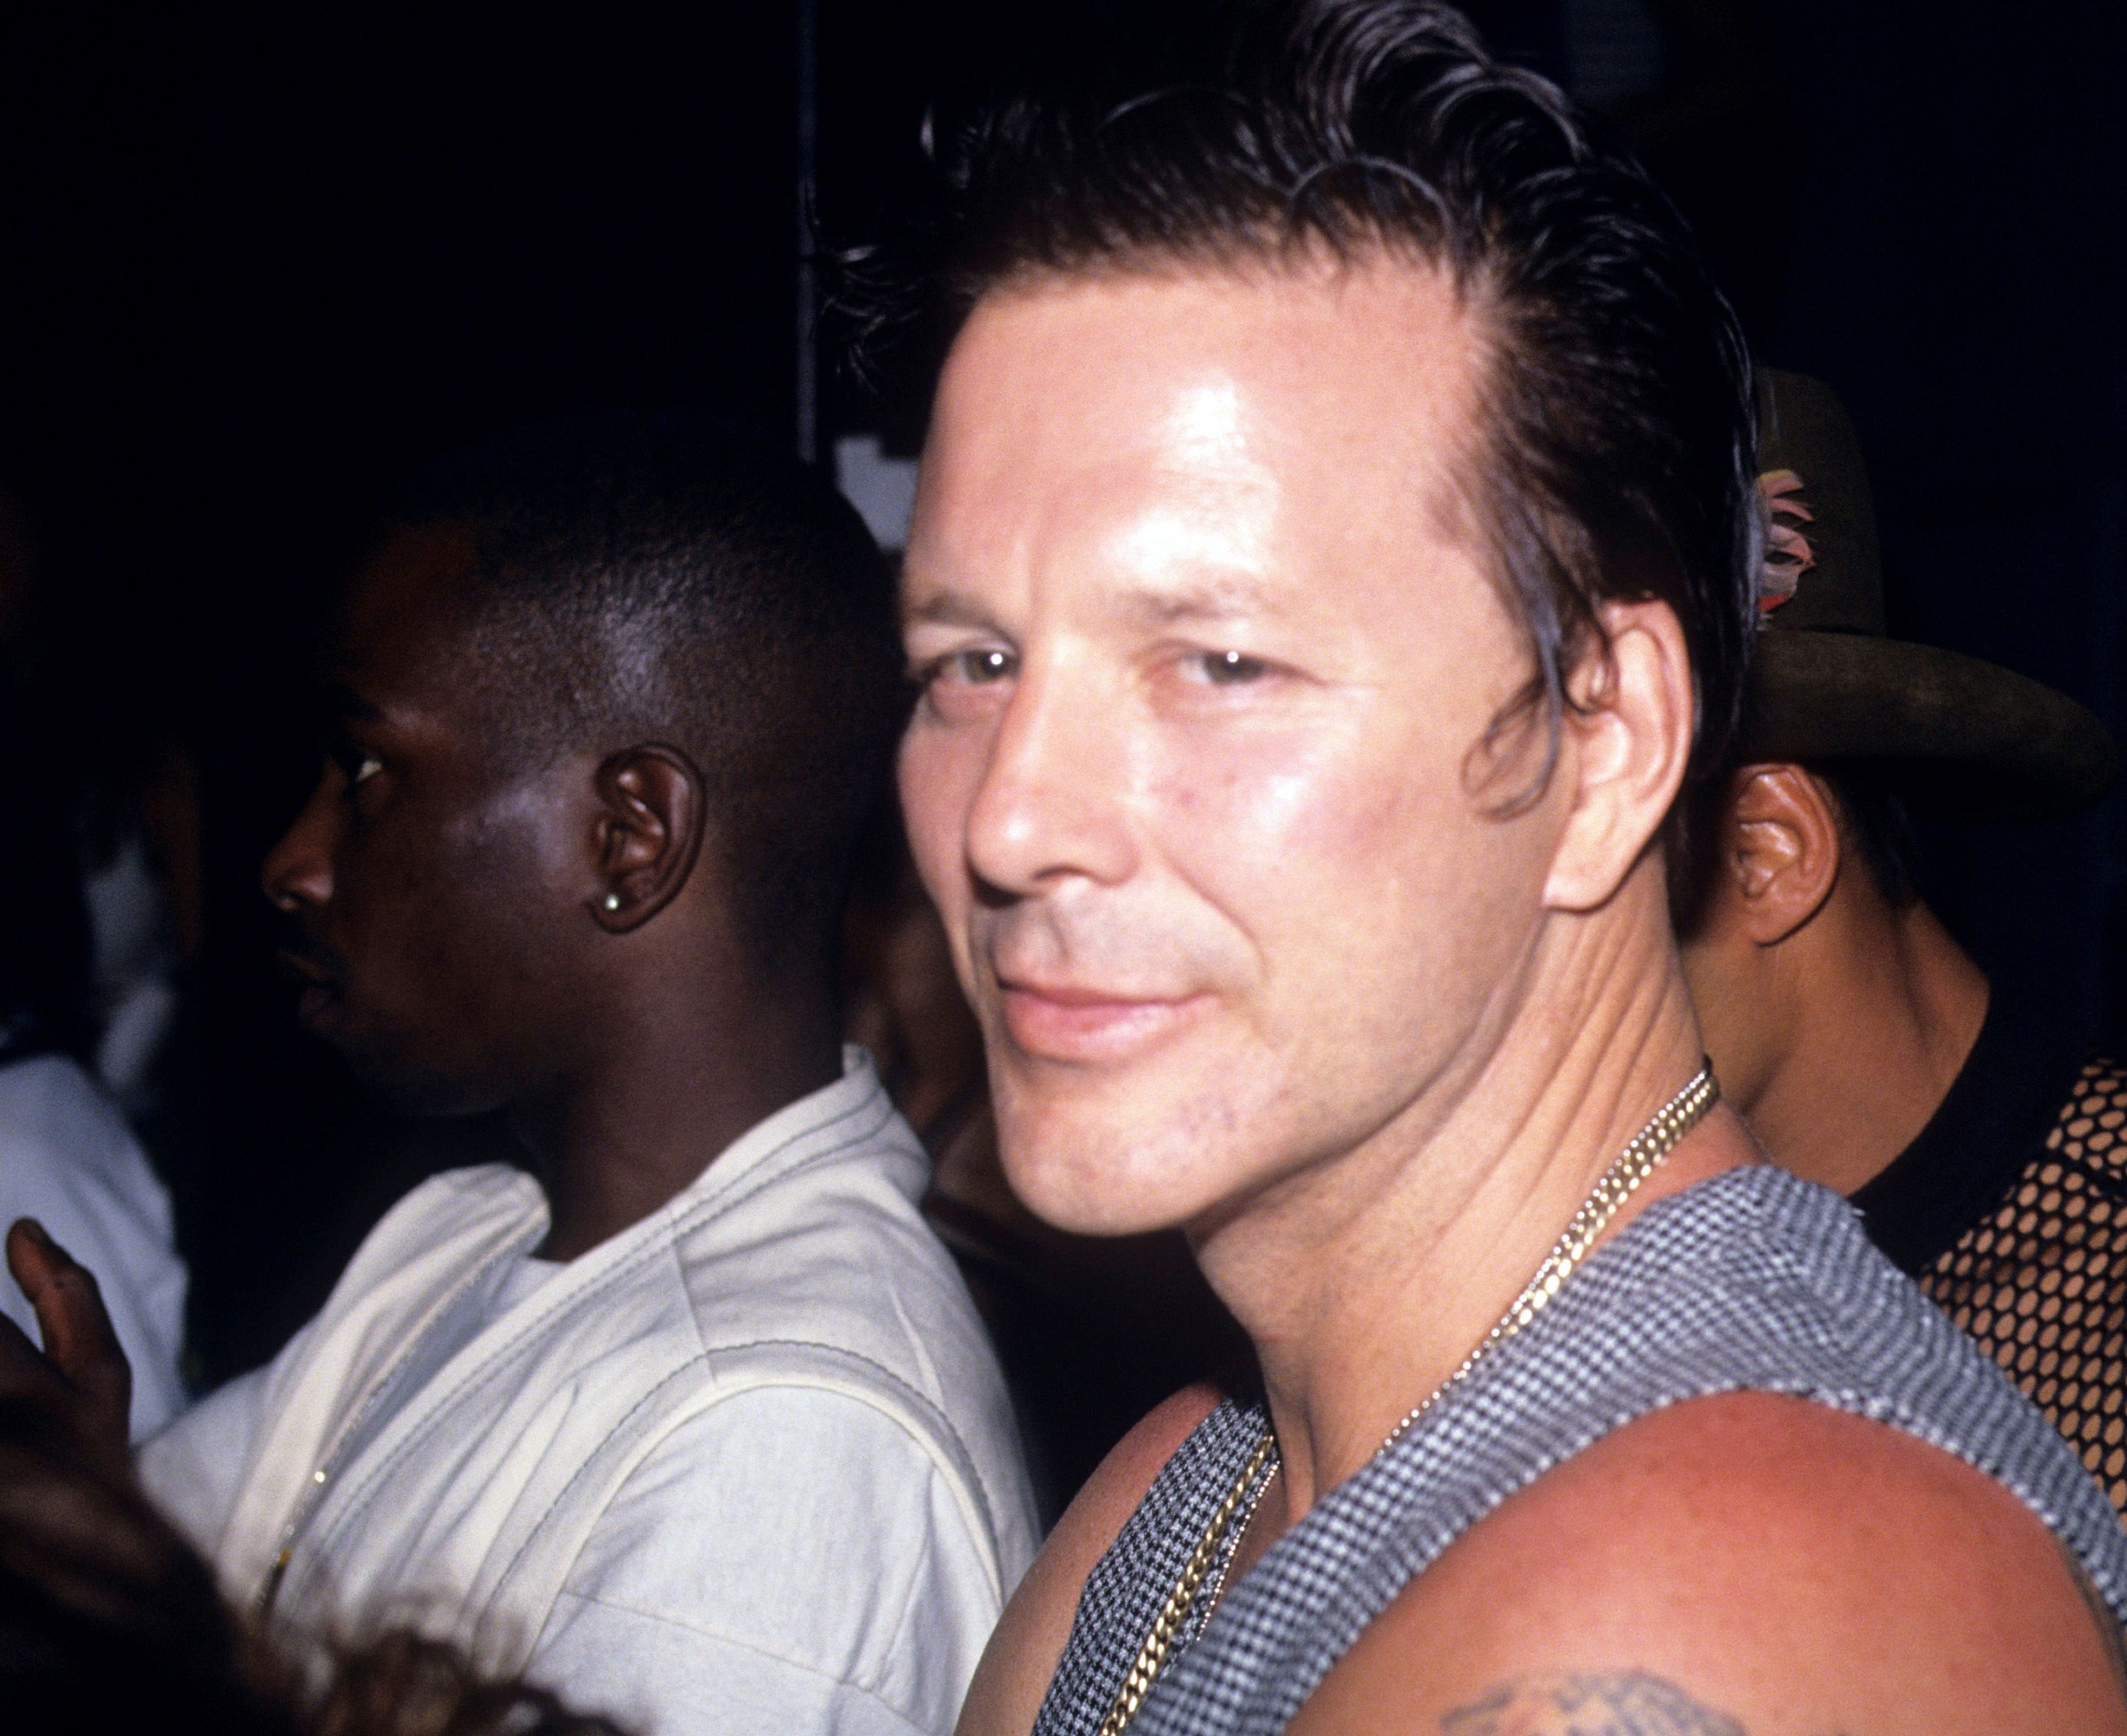 21 4 scaled e1600684207789 20 Things You Never Knew About Mickey Rourke